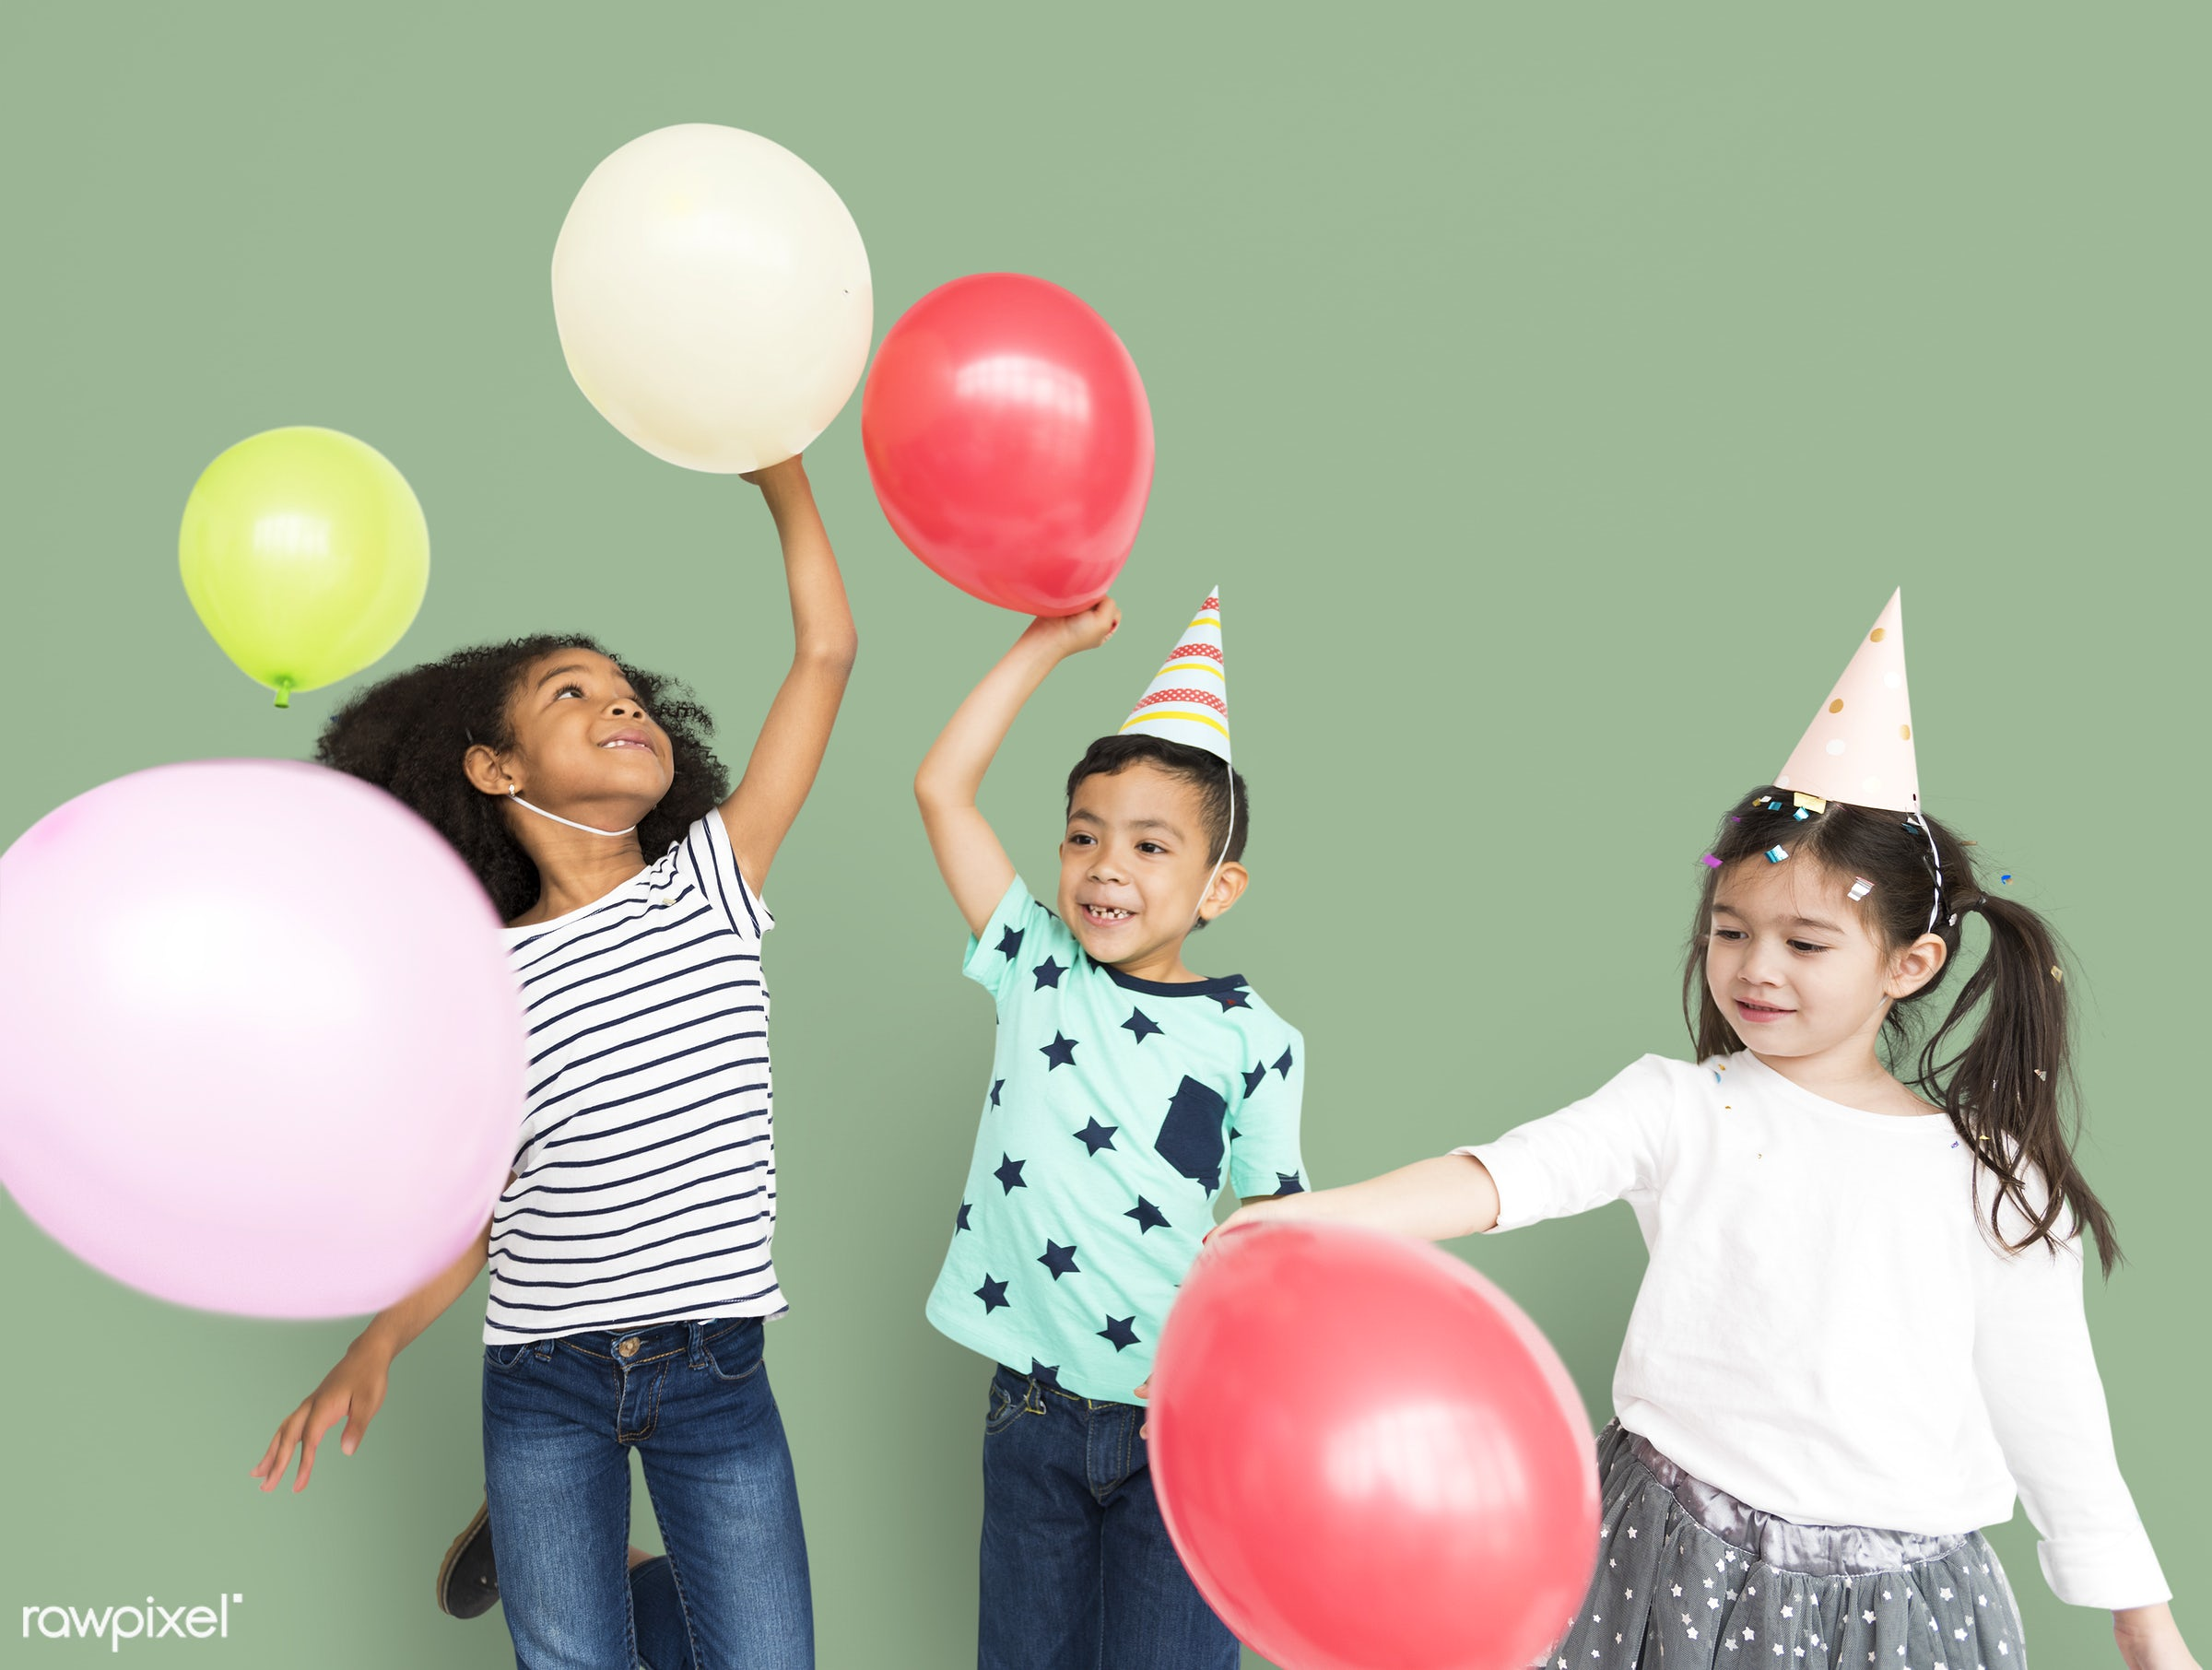 studio, expression, person, little, children, party, cute, people, pose, girl, friends, happy, friendship, smile, cheerful,...